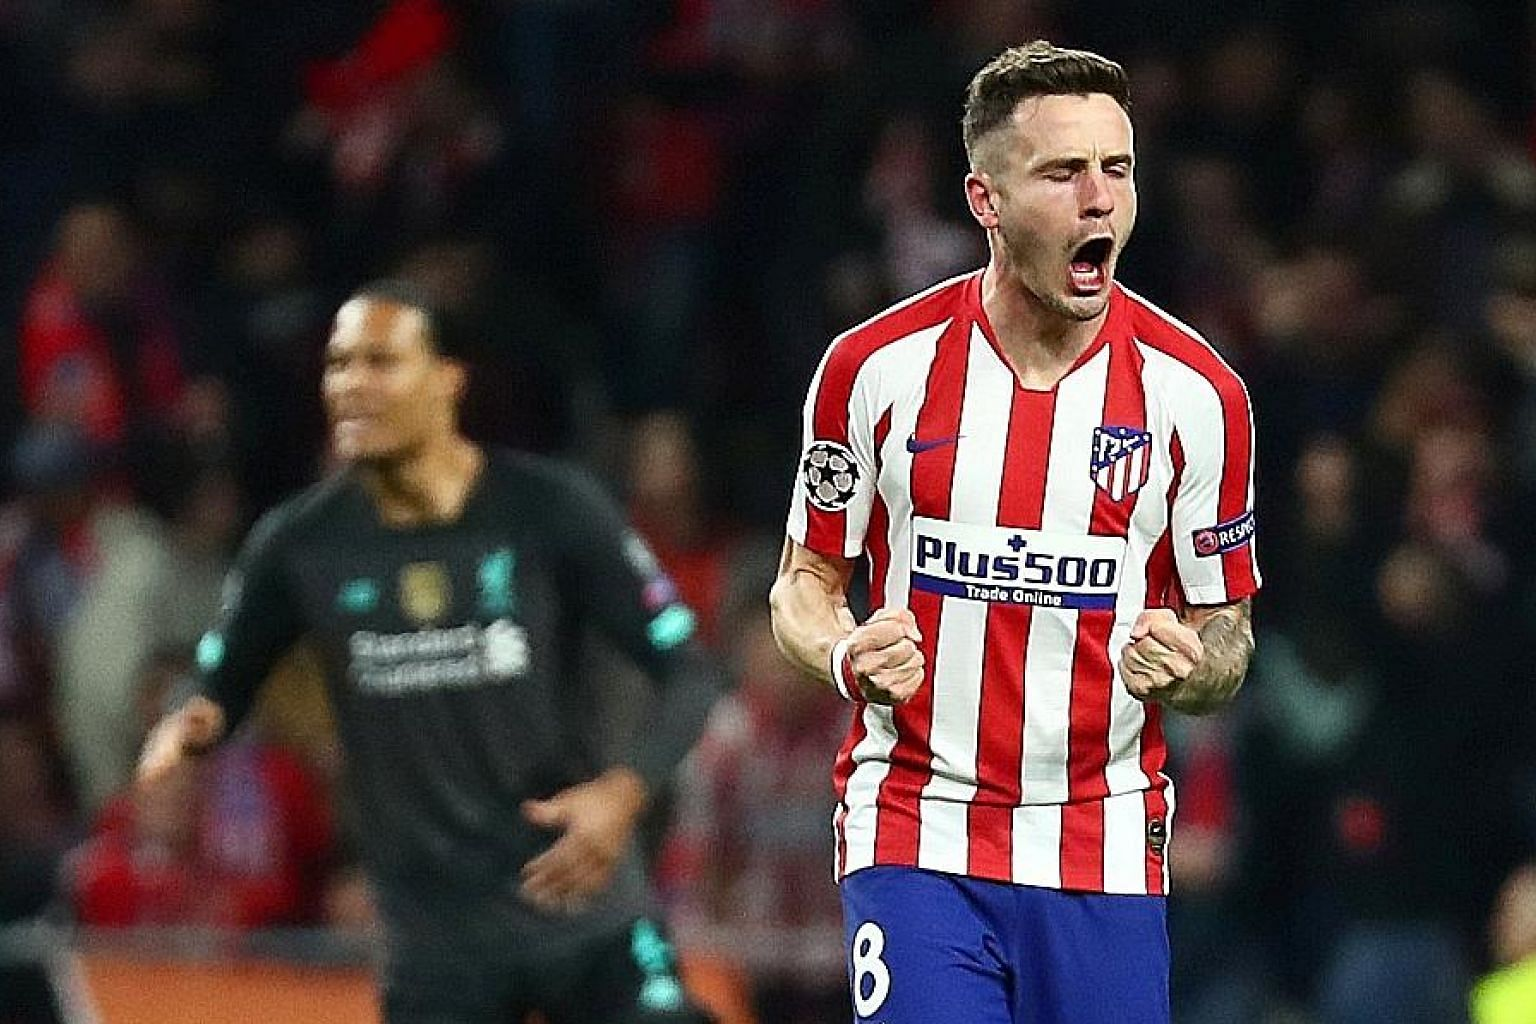 Atletico Madrid's Saul Niguez celebrating his goal in the Champions League last-16, first-leg clash against Liverpool at the Wanda Metropolitano. Atletico beat the champions 1-0 to set up a tantalising second leg at Anfield. PHOTO: REUTERS